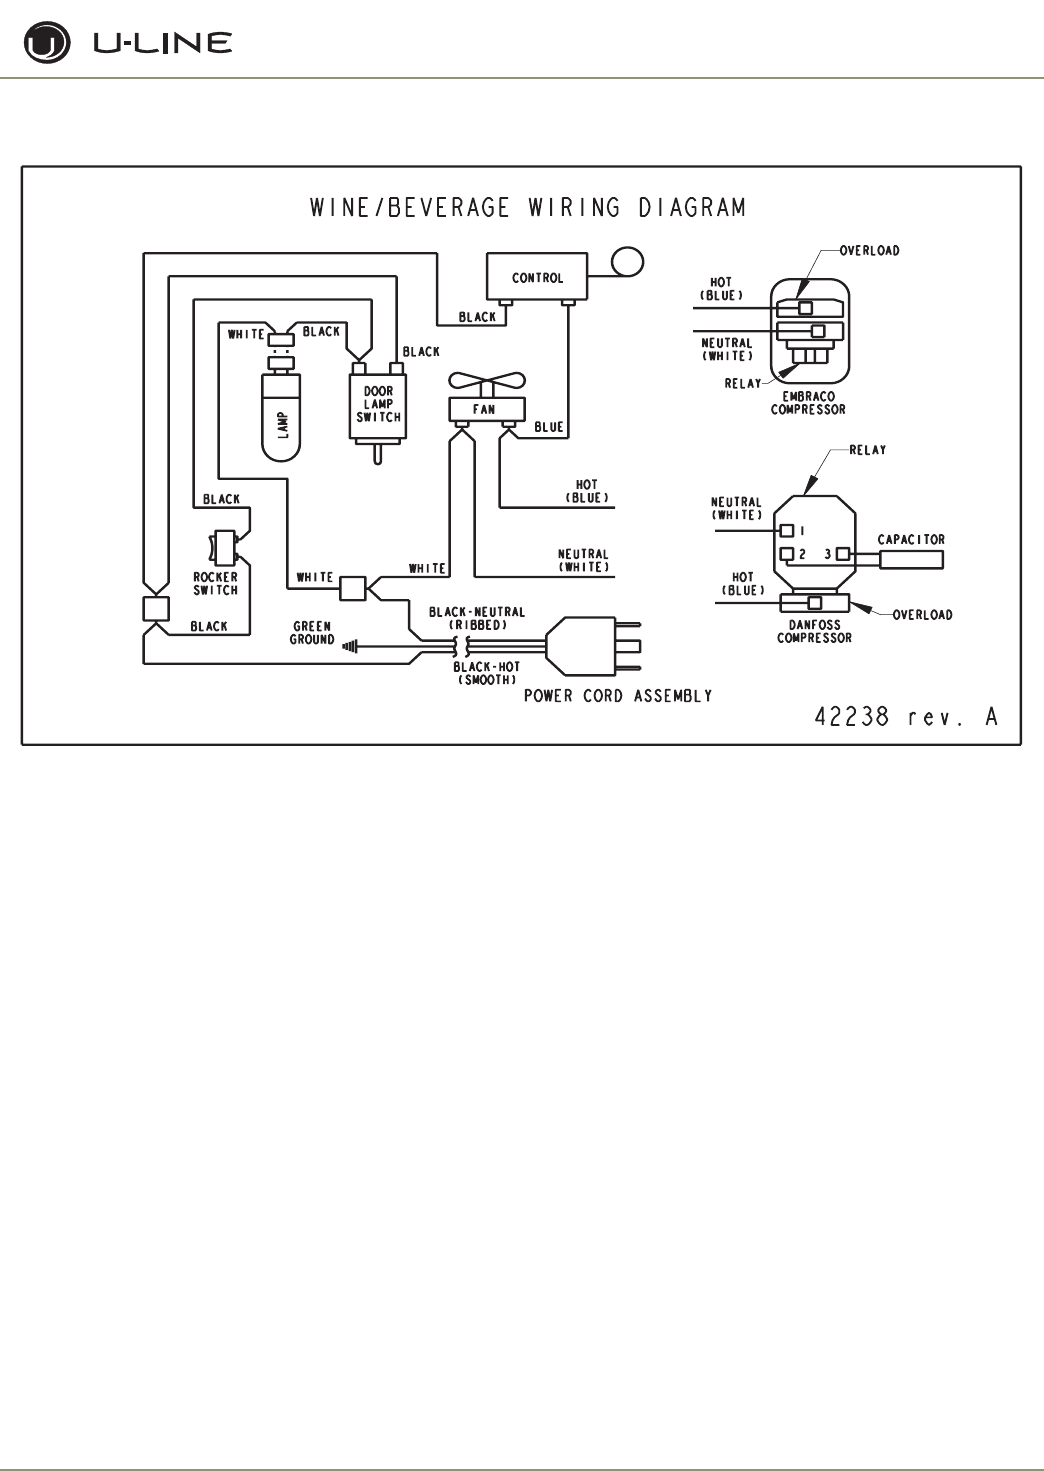 et-40 Uline B Ice Maker Wiring Diagram on